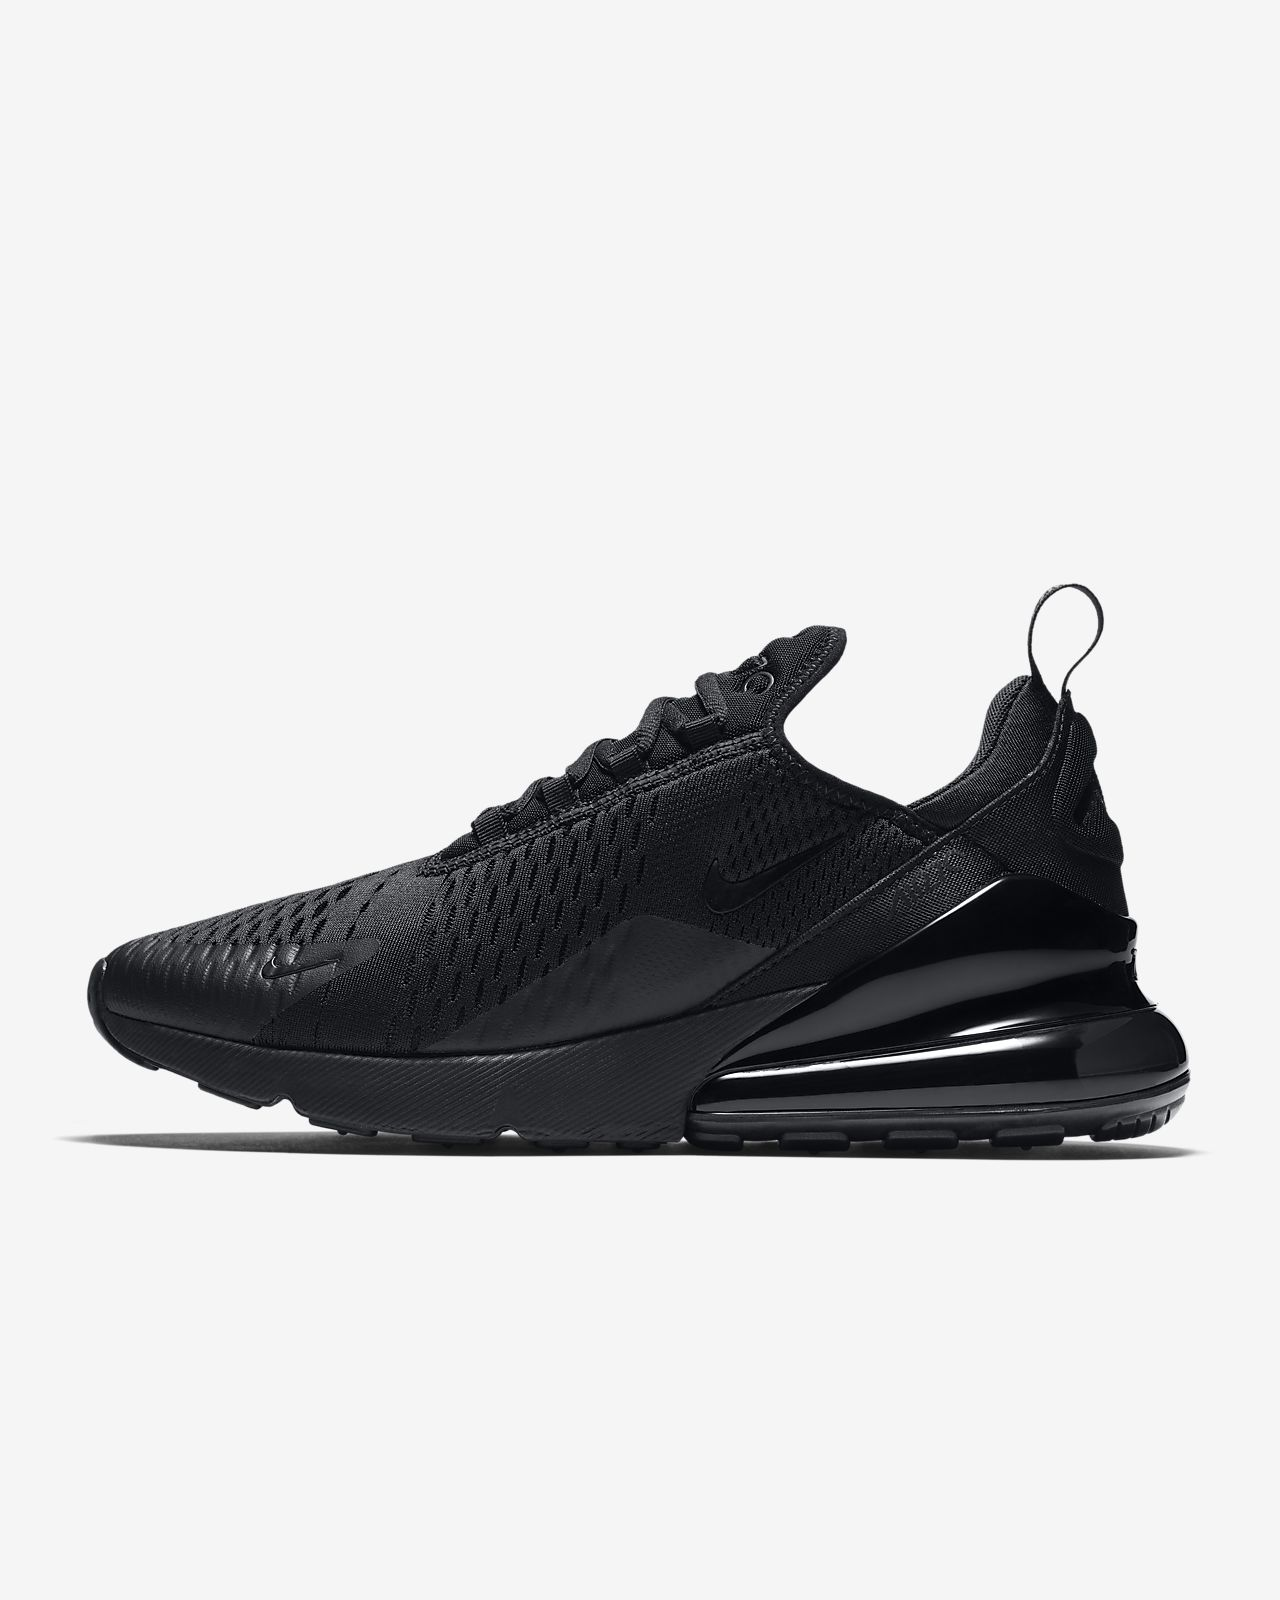 cheaper 0d8eb 096b4 Nike Air Max 270